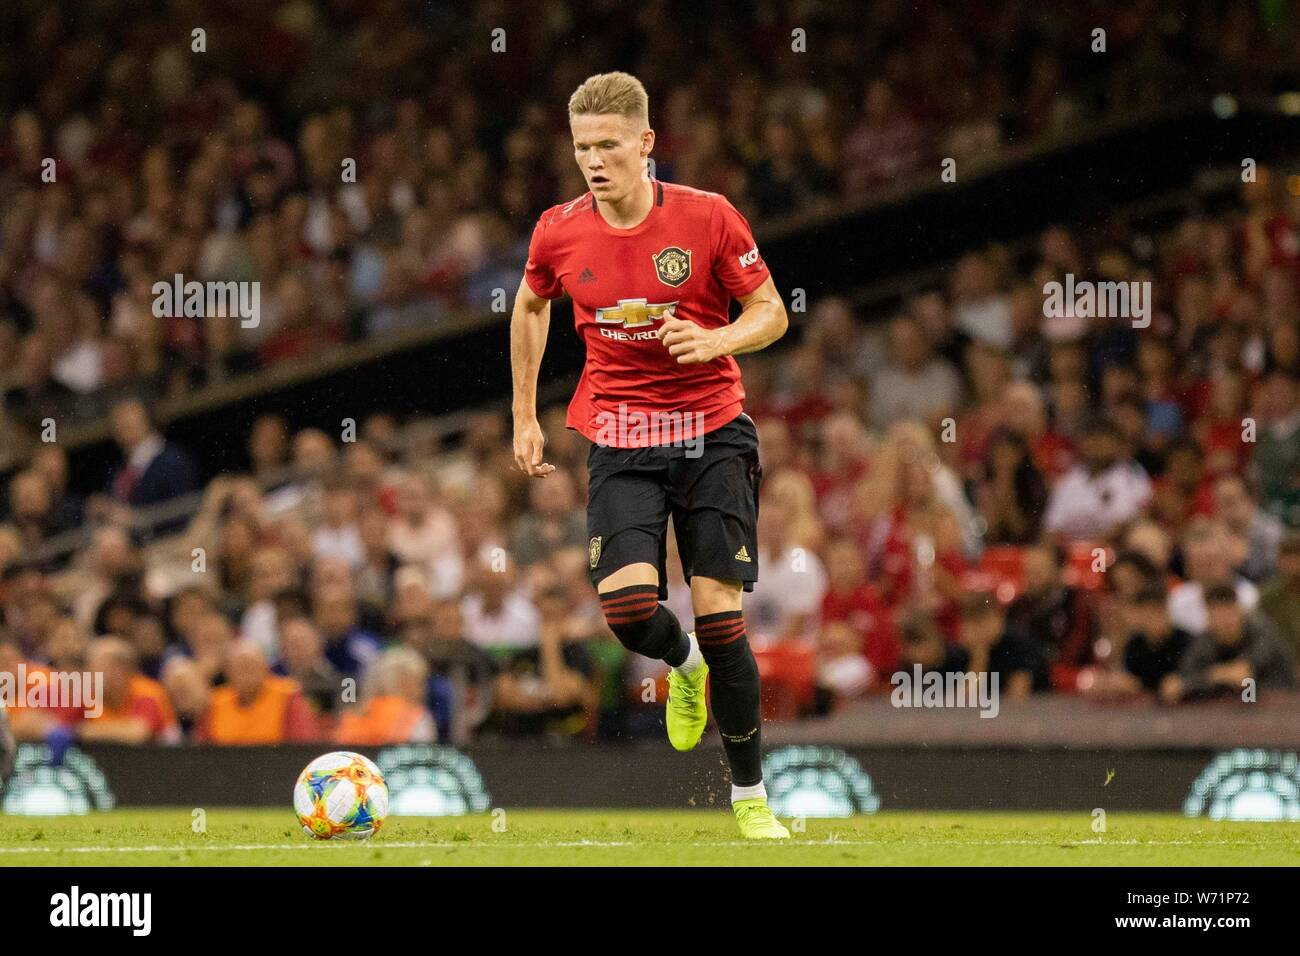 Manchester United International Champions Cup 2020.Mctominay Stock Photos Mctominay Stock Images Alamy